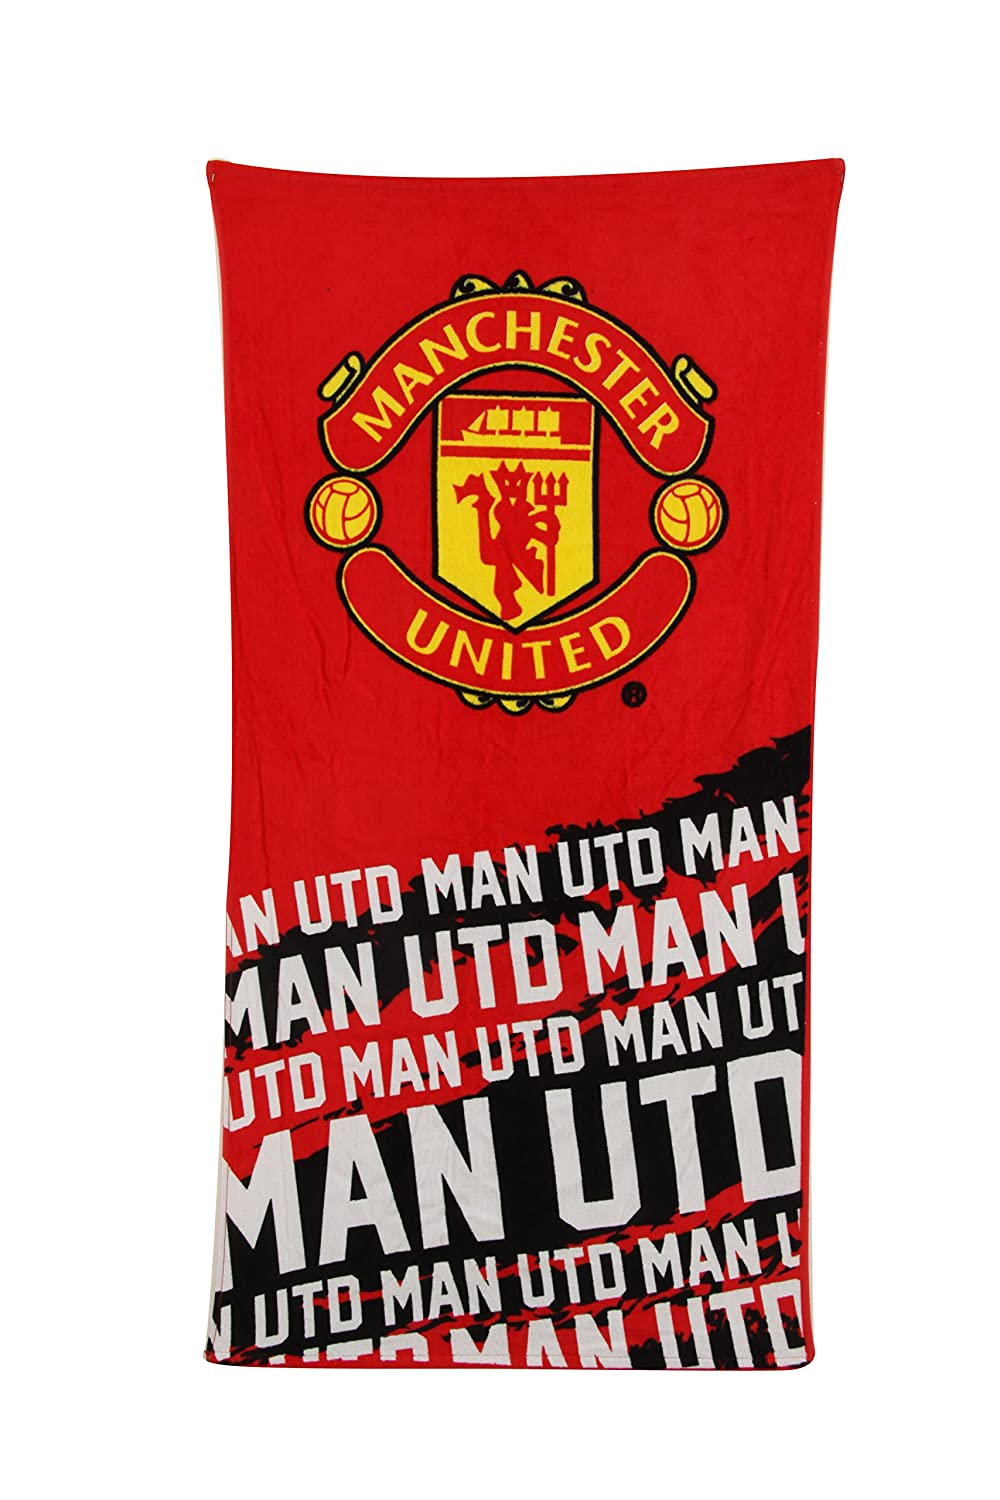 NEW 100% OFFICIAL FOOTBALL CLUB TEAM STRIP TOWELS BEACH BATH GYM SWIM LICENSED (Manchester United 1) 6W-MV3O-MGOV